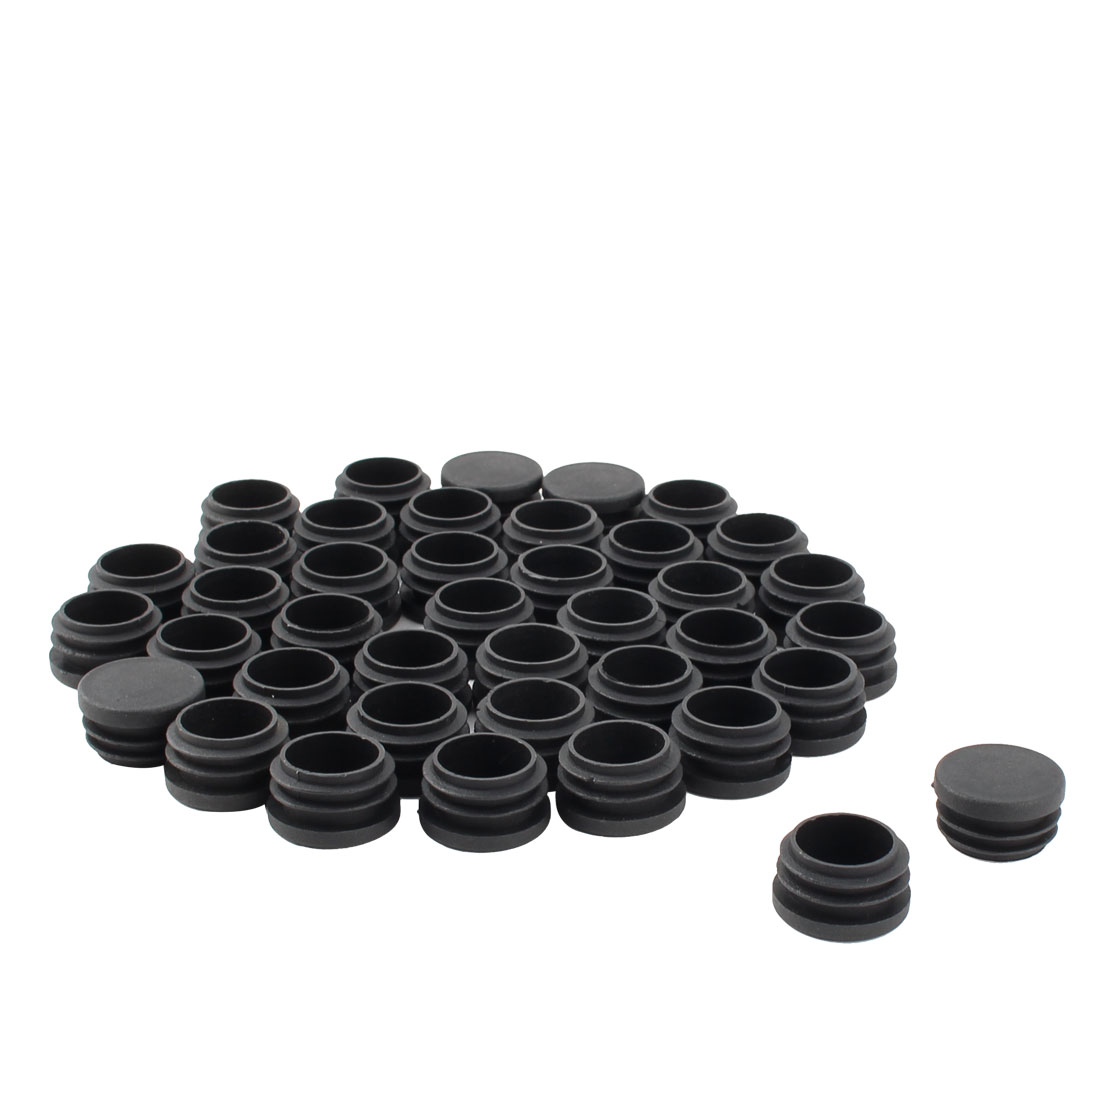 Table Chair Legs Plastic Round Tube Insert Cap Cover Black 30mm Dia 40pcs